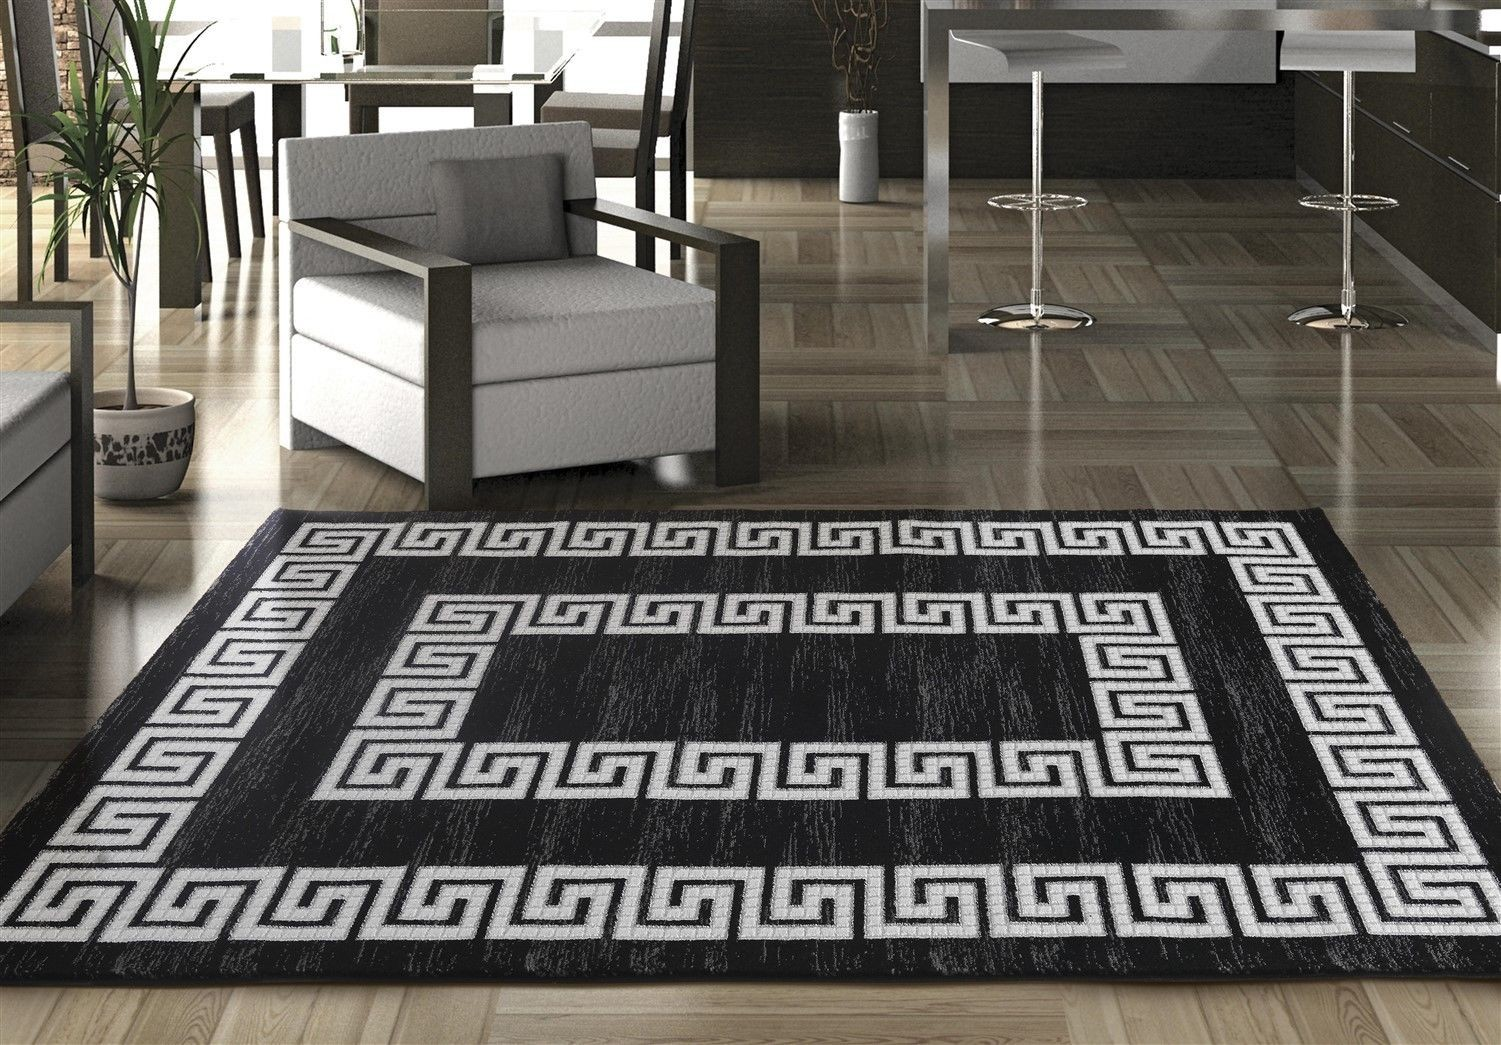 Grand Tapis Salon Latest Grand Tapis Grand Tapis Salon Grands Tapis Tapis